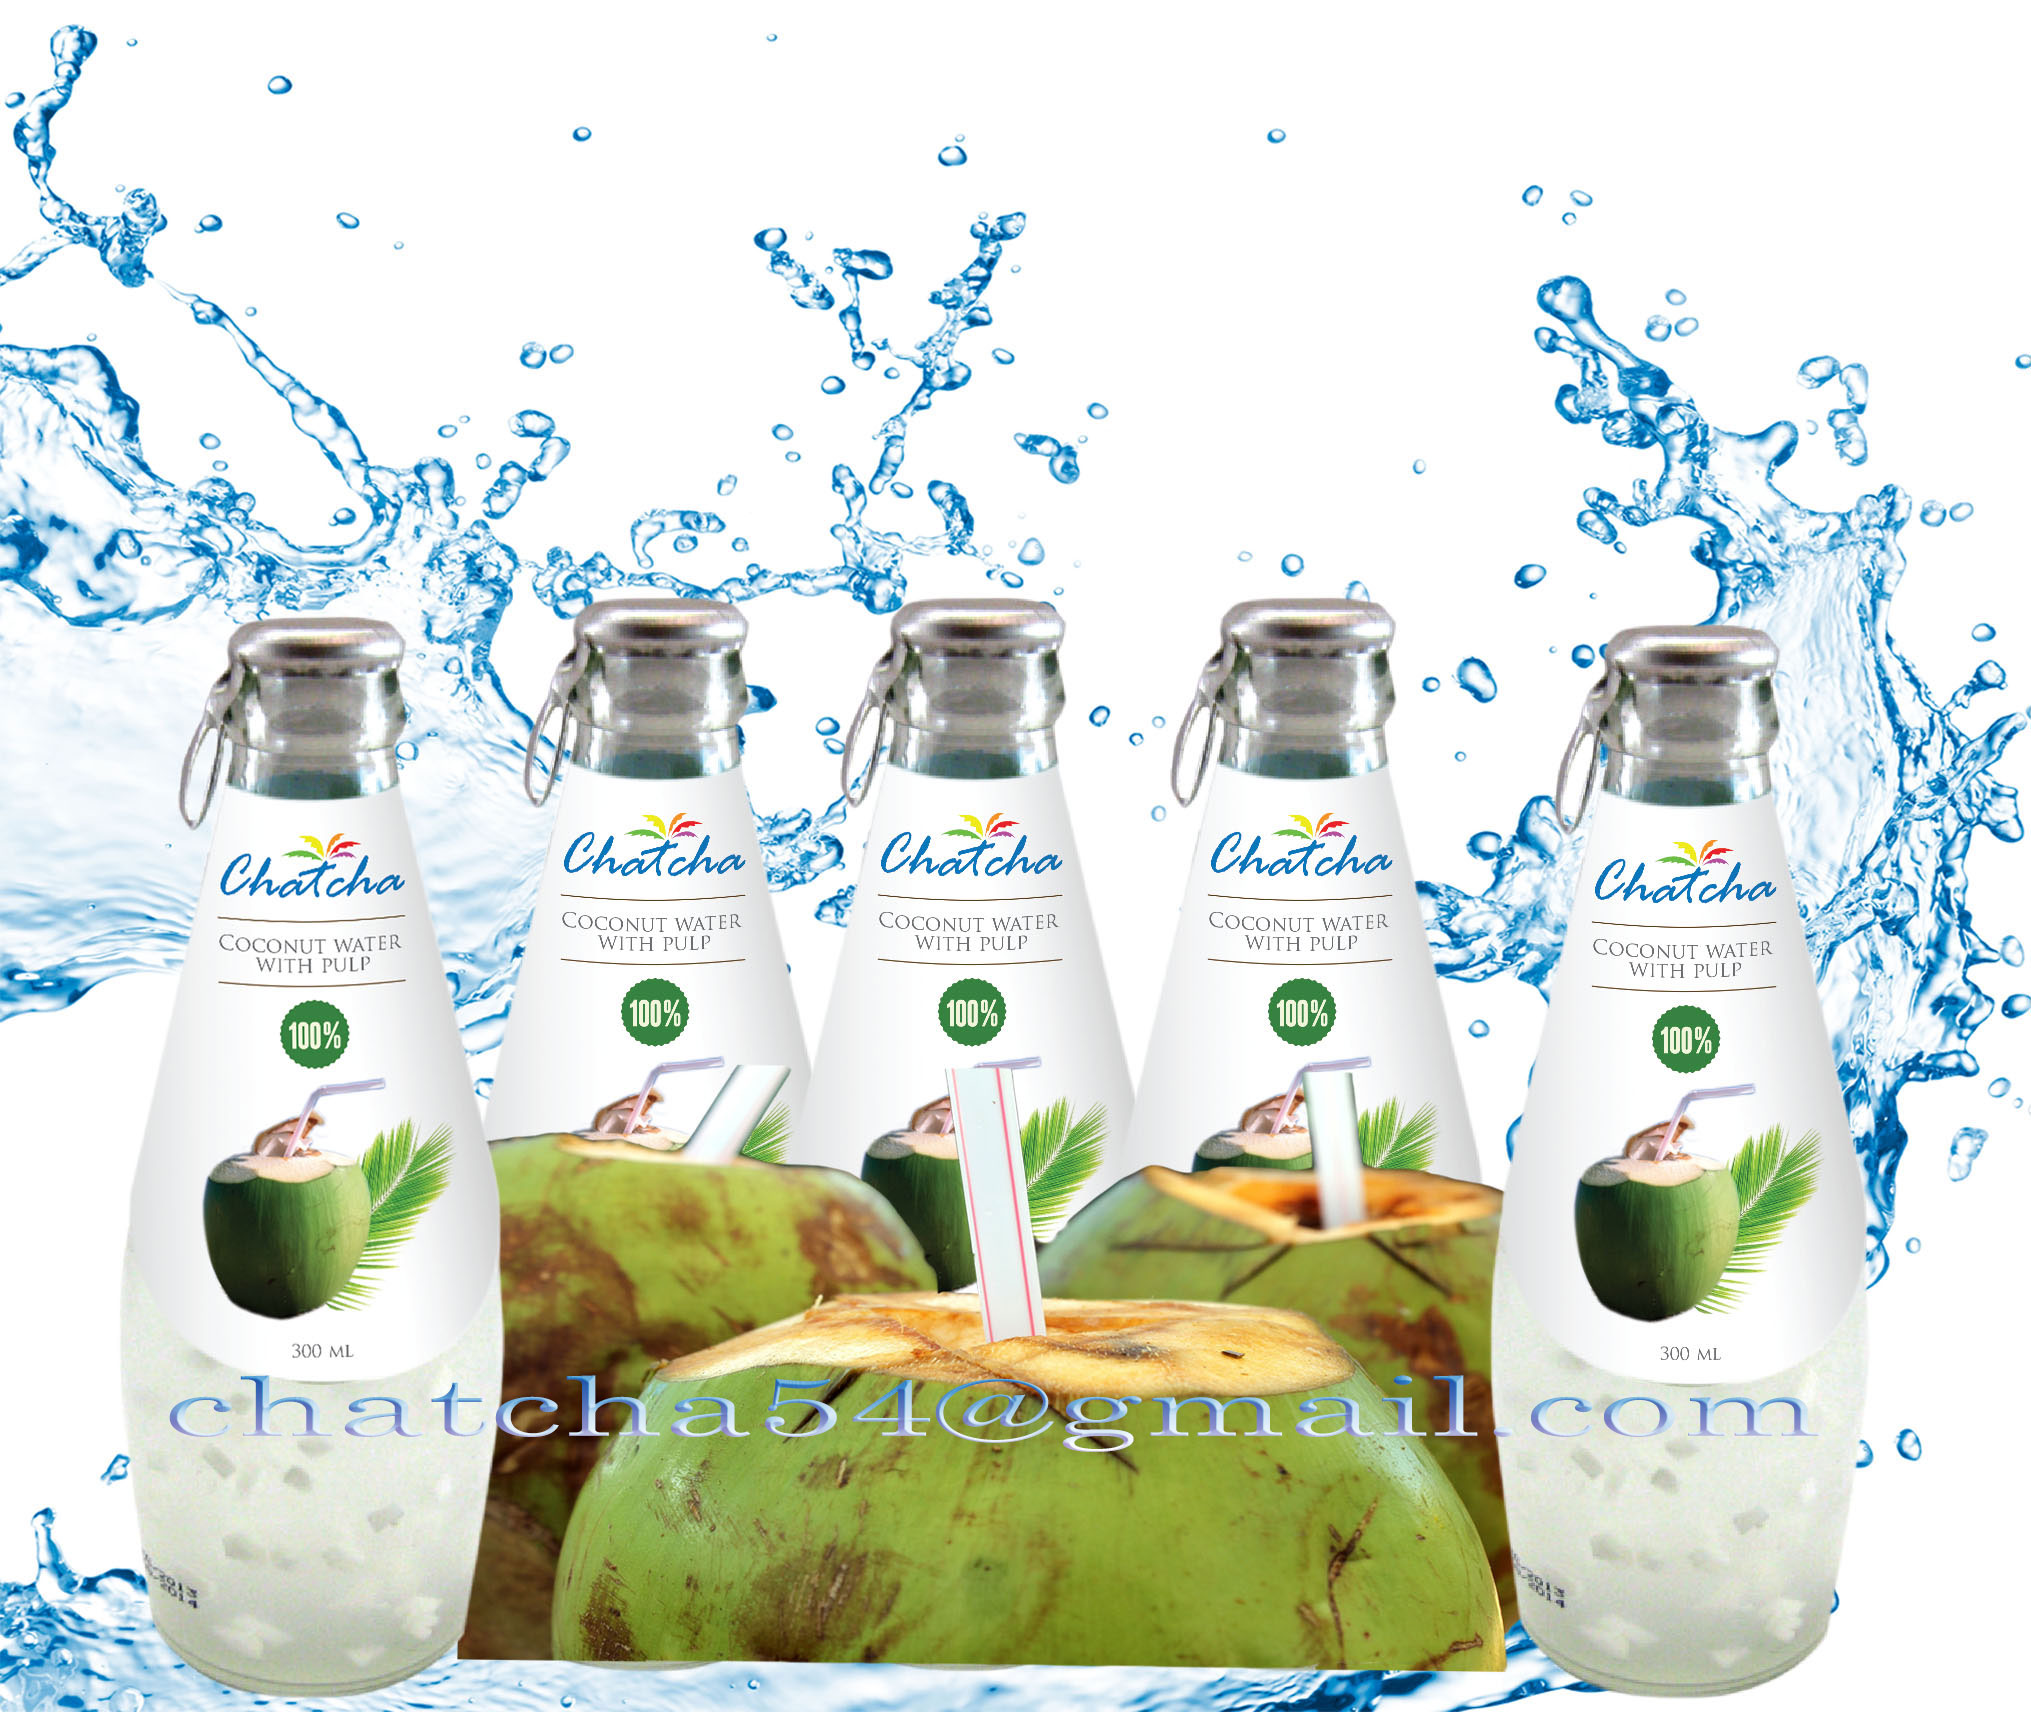 100% coconut water with pulp